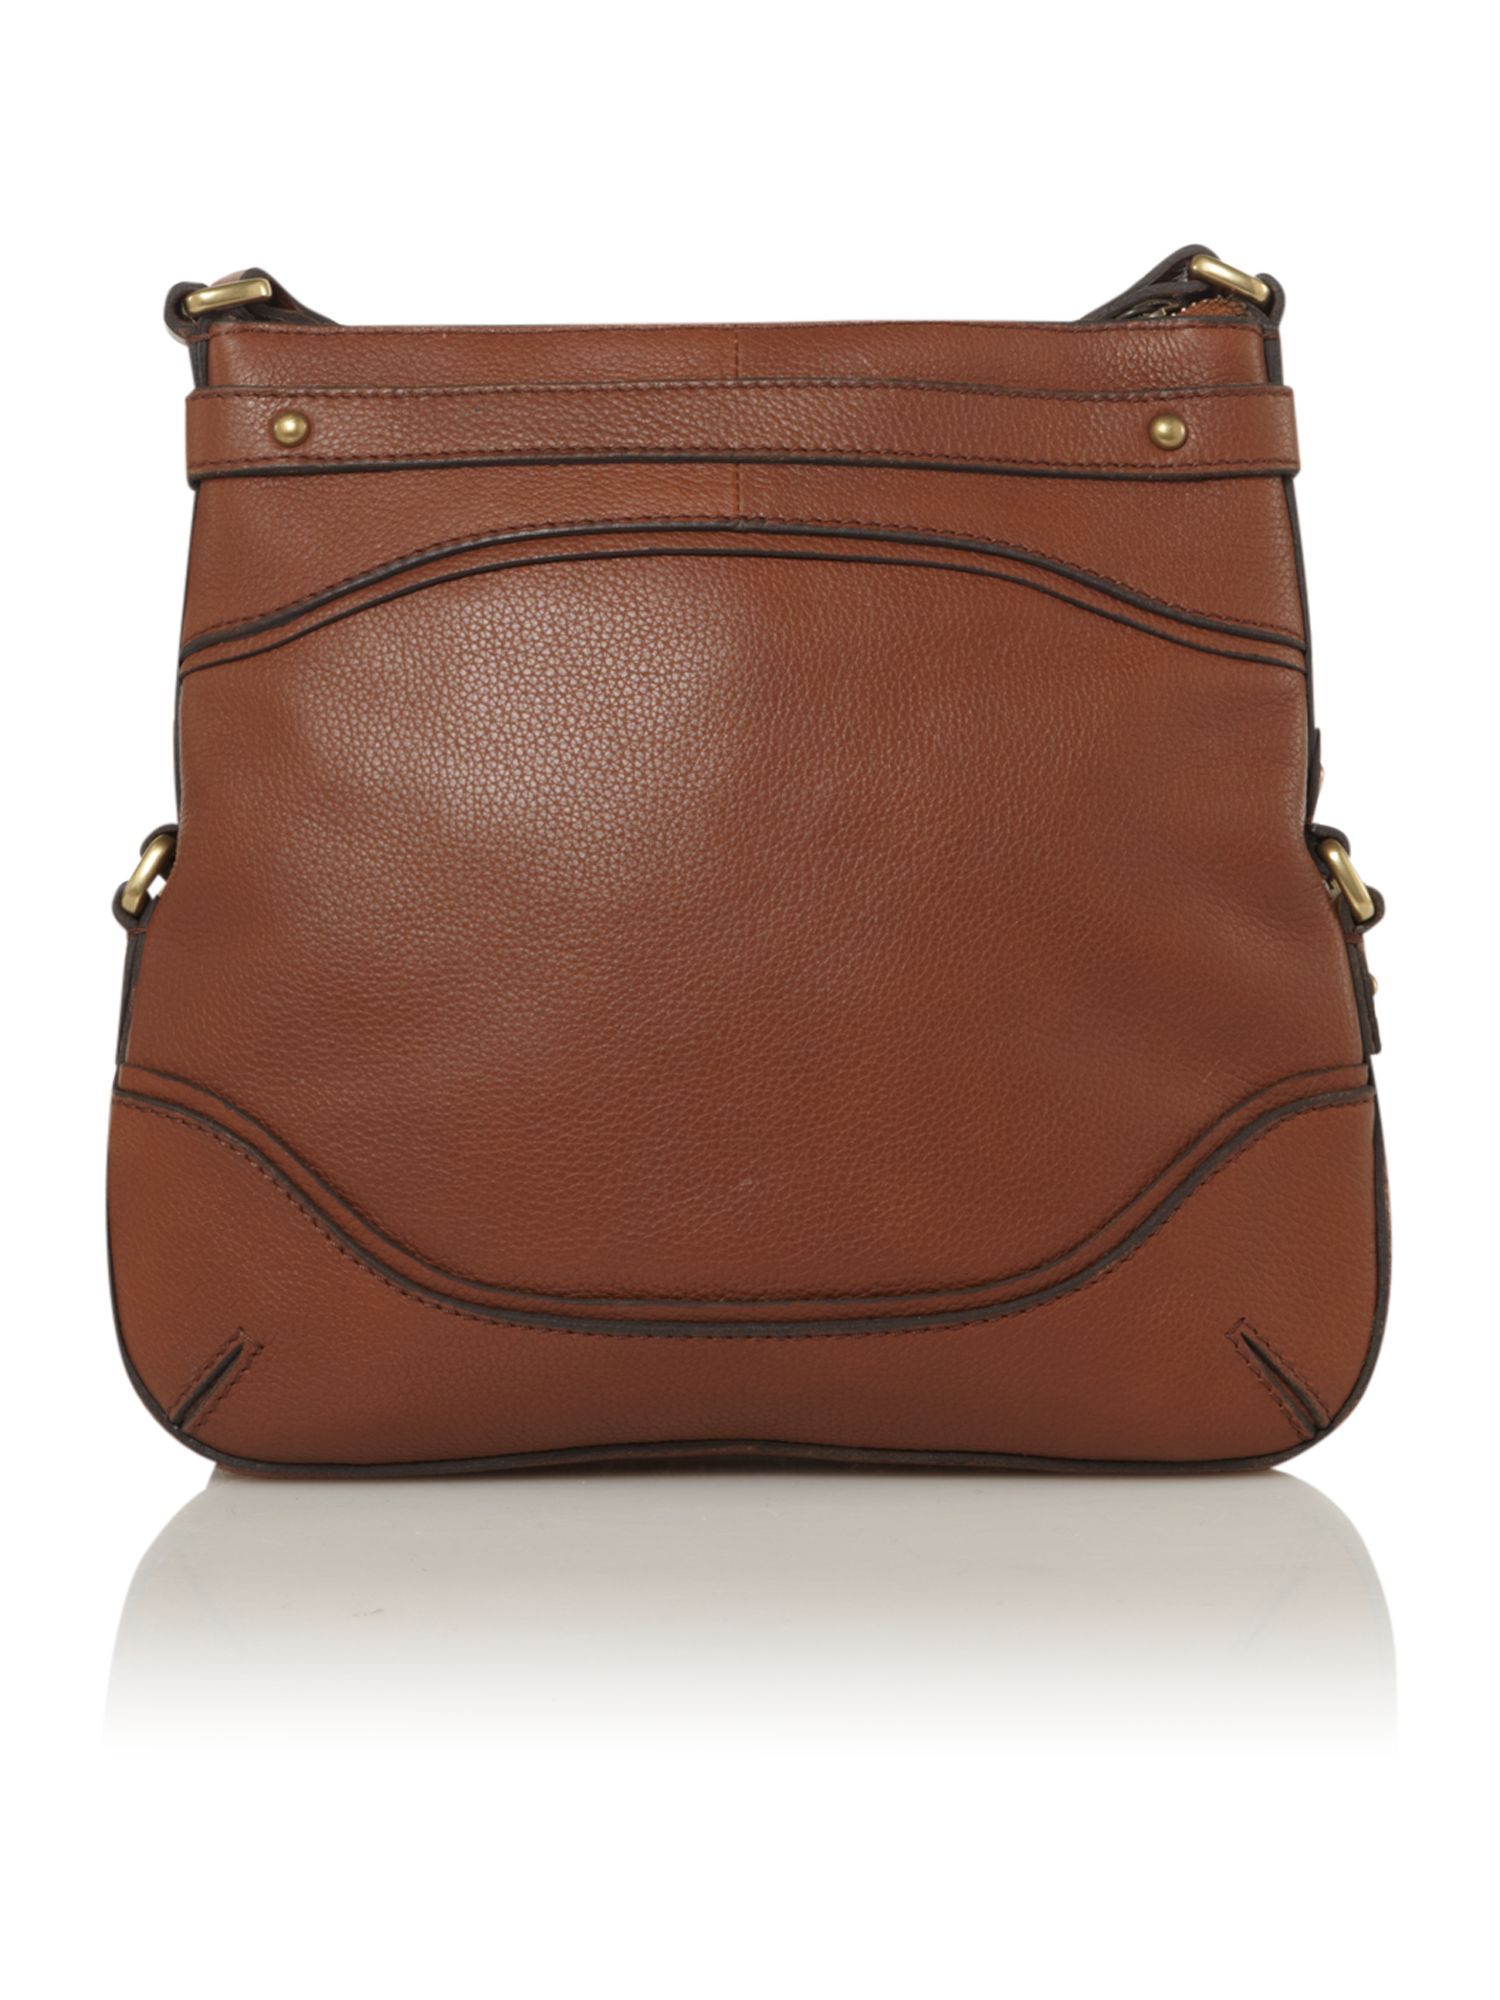 Martha cross body bag